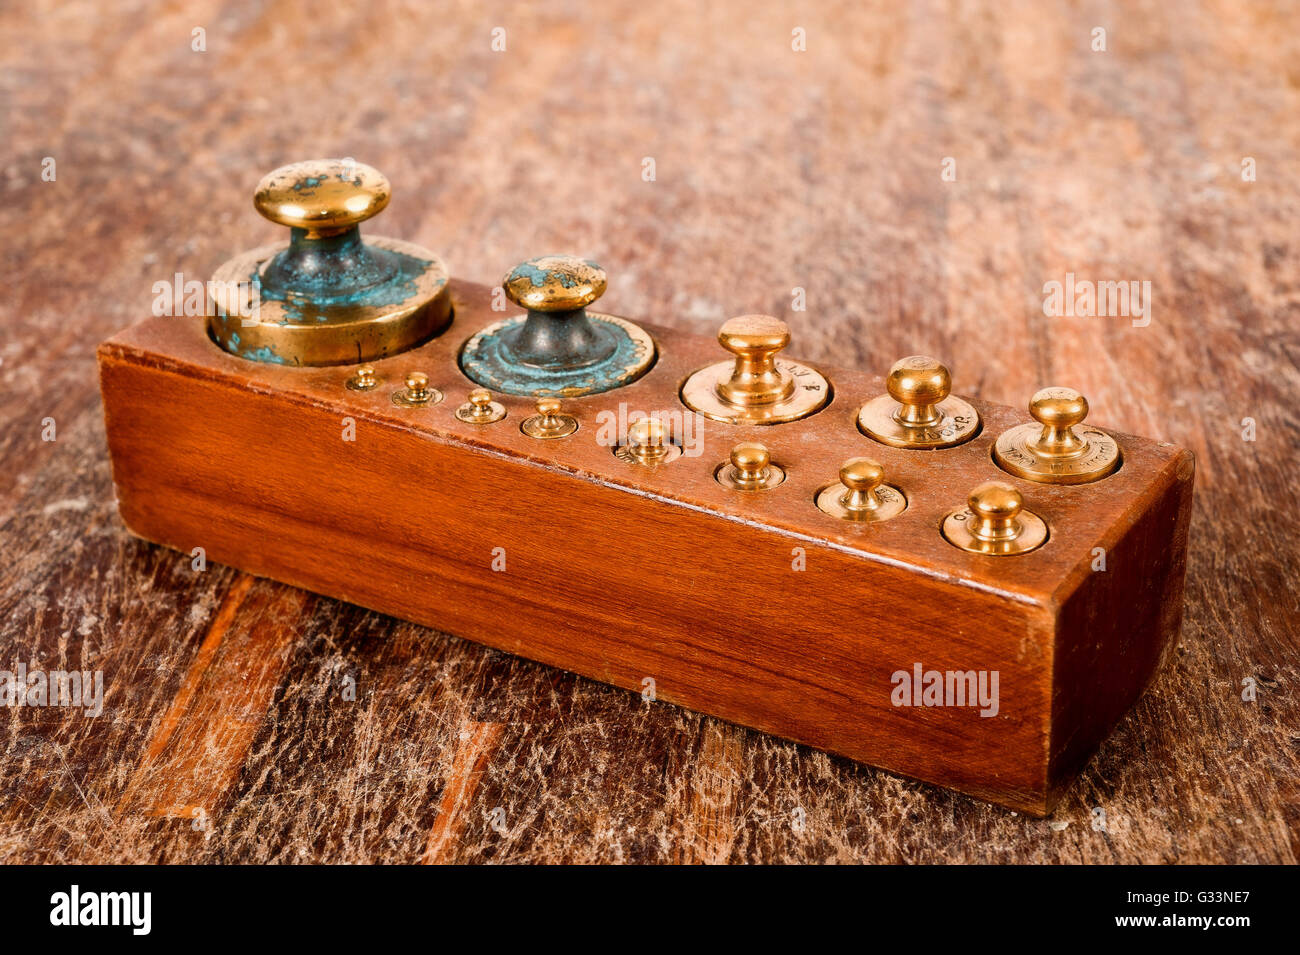 Old weights for precision balance - Stock Image